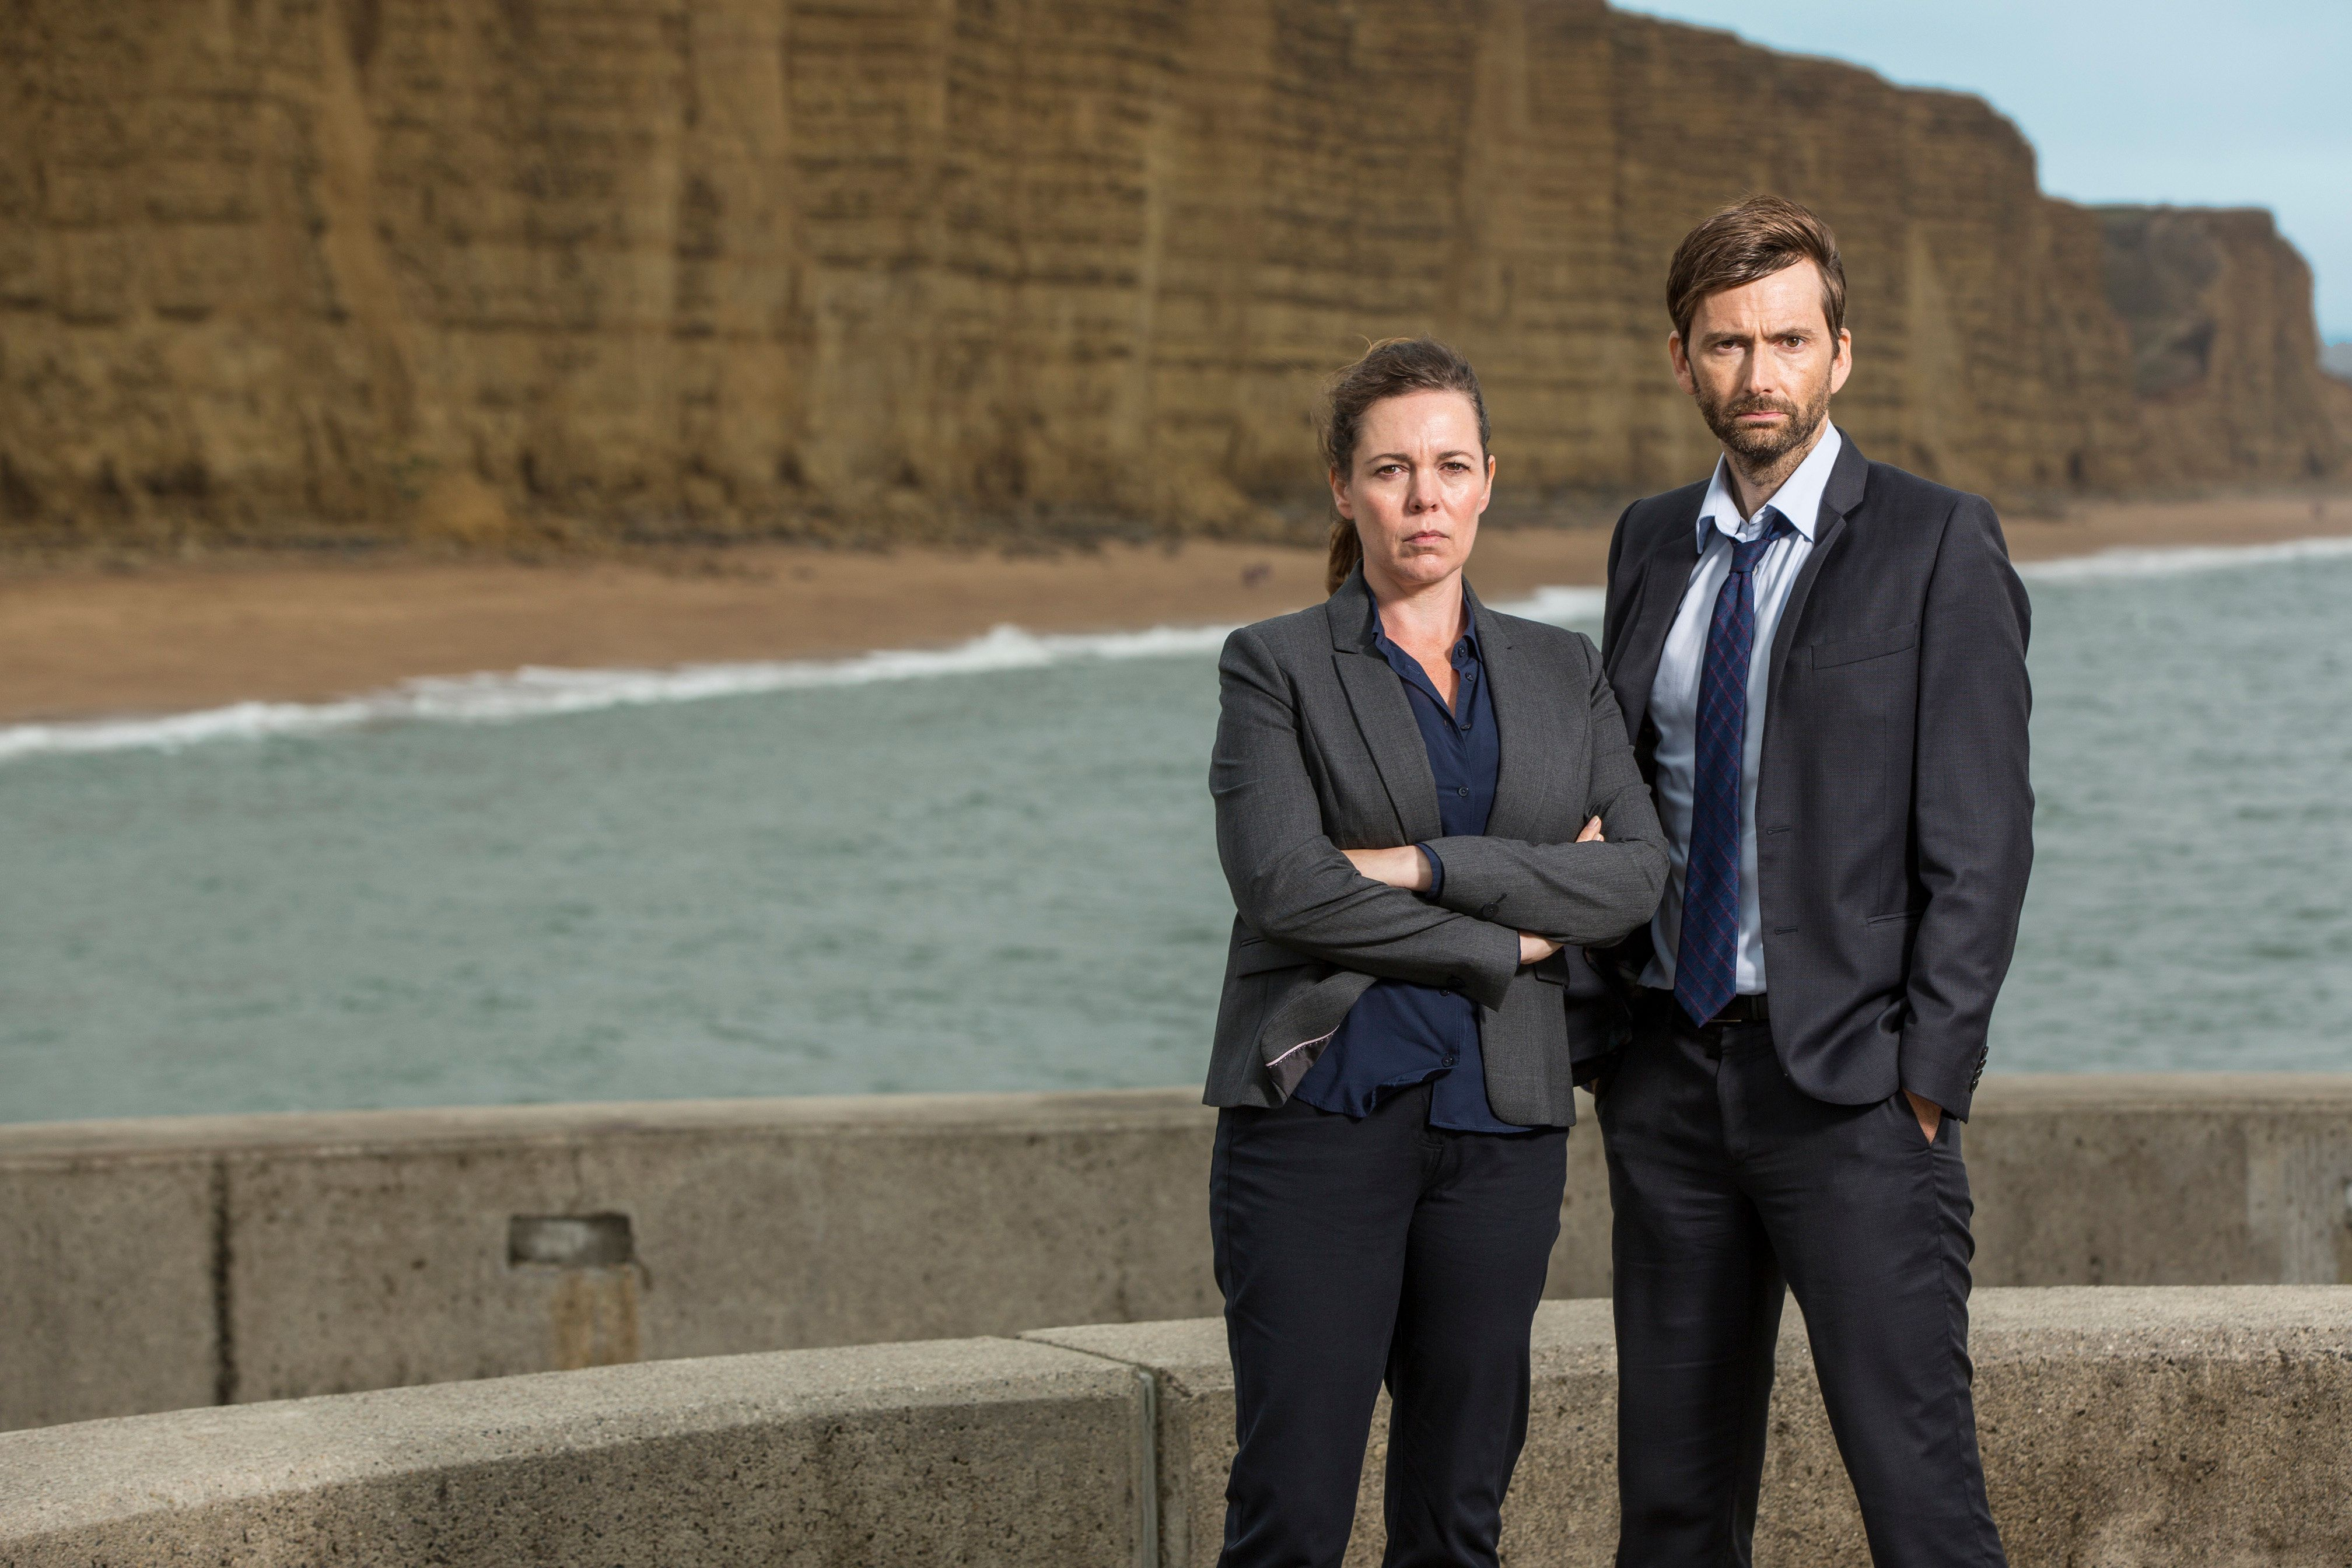 The duo will return for the third and final series of 'Broadchurch' later this